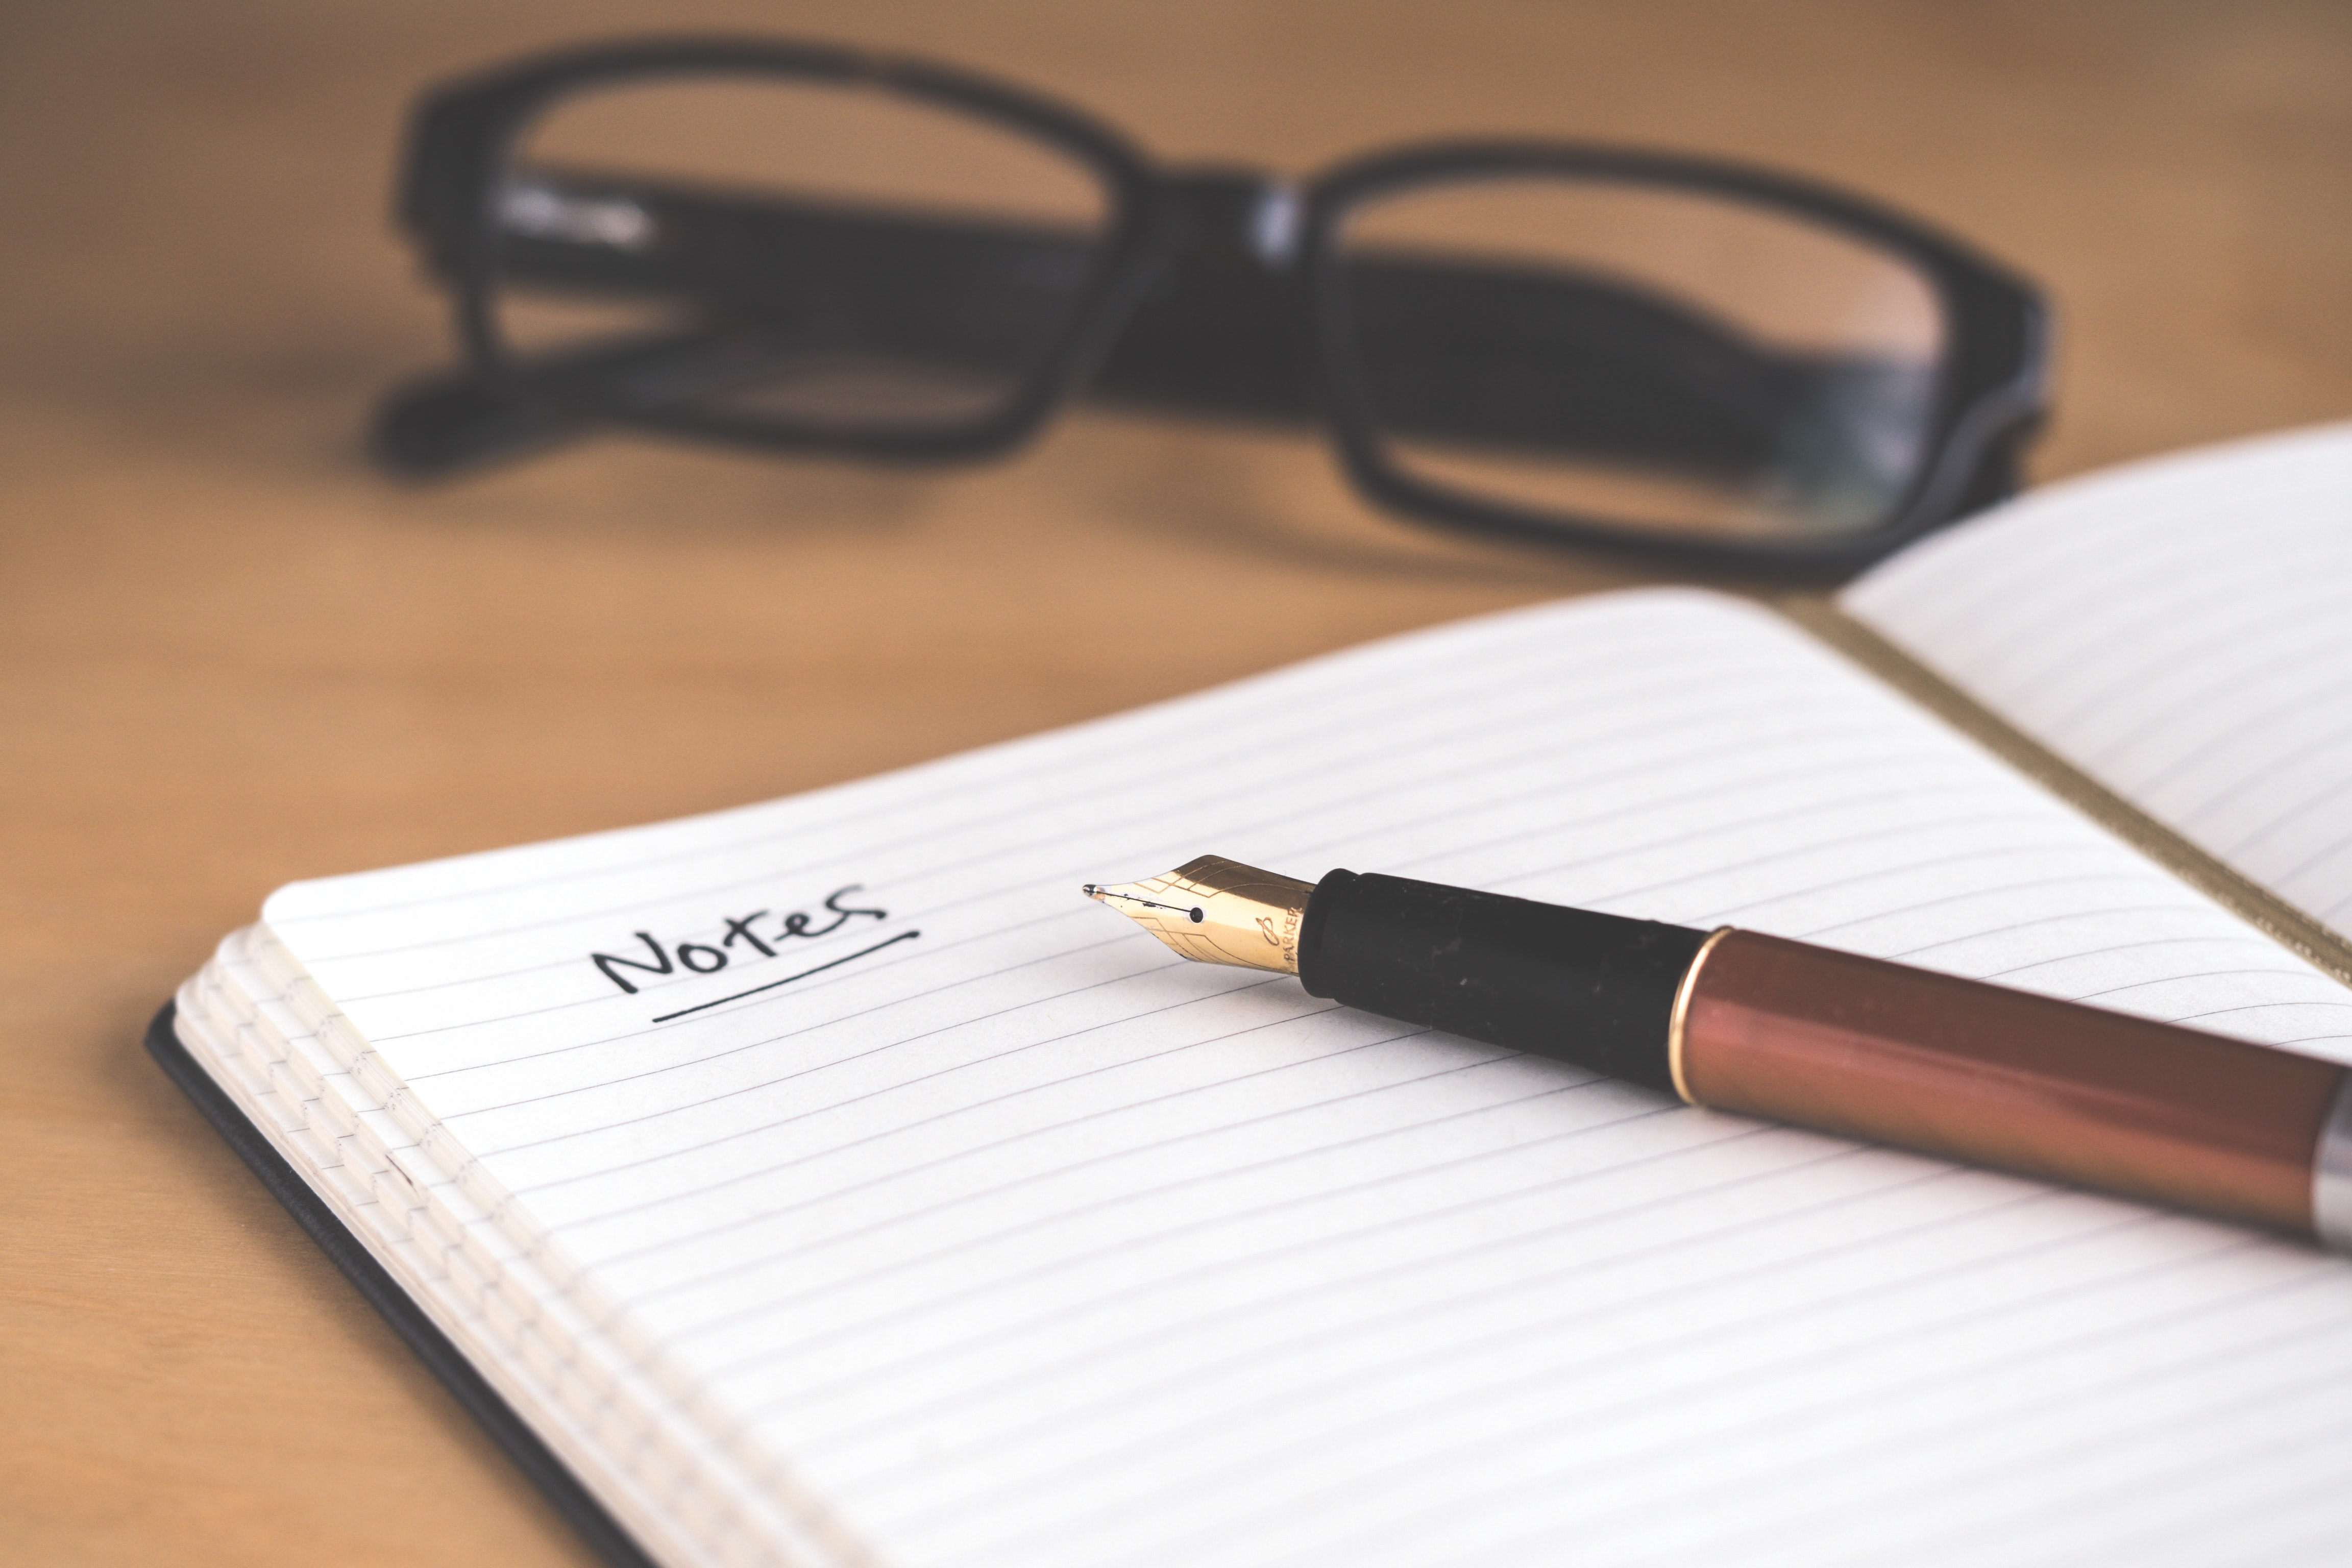 Picture of a pen and a notebook